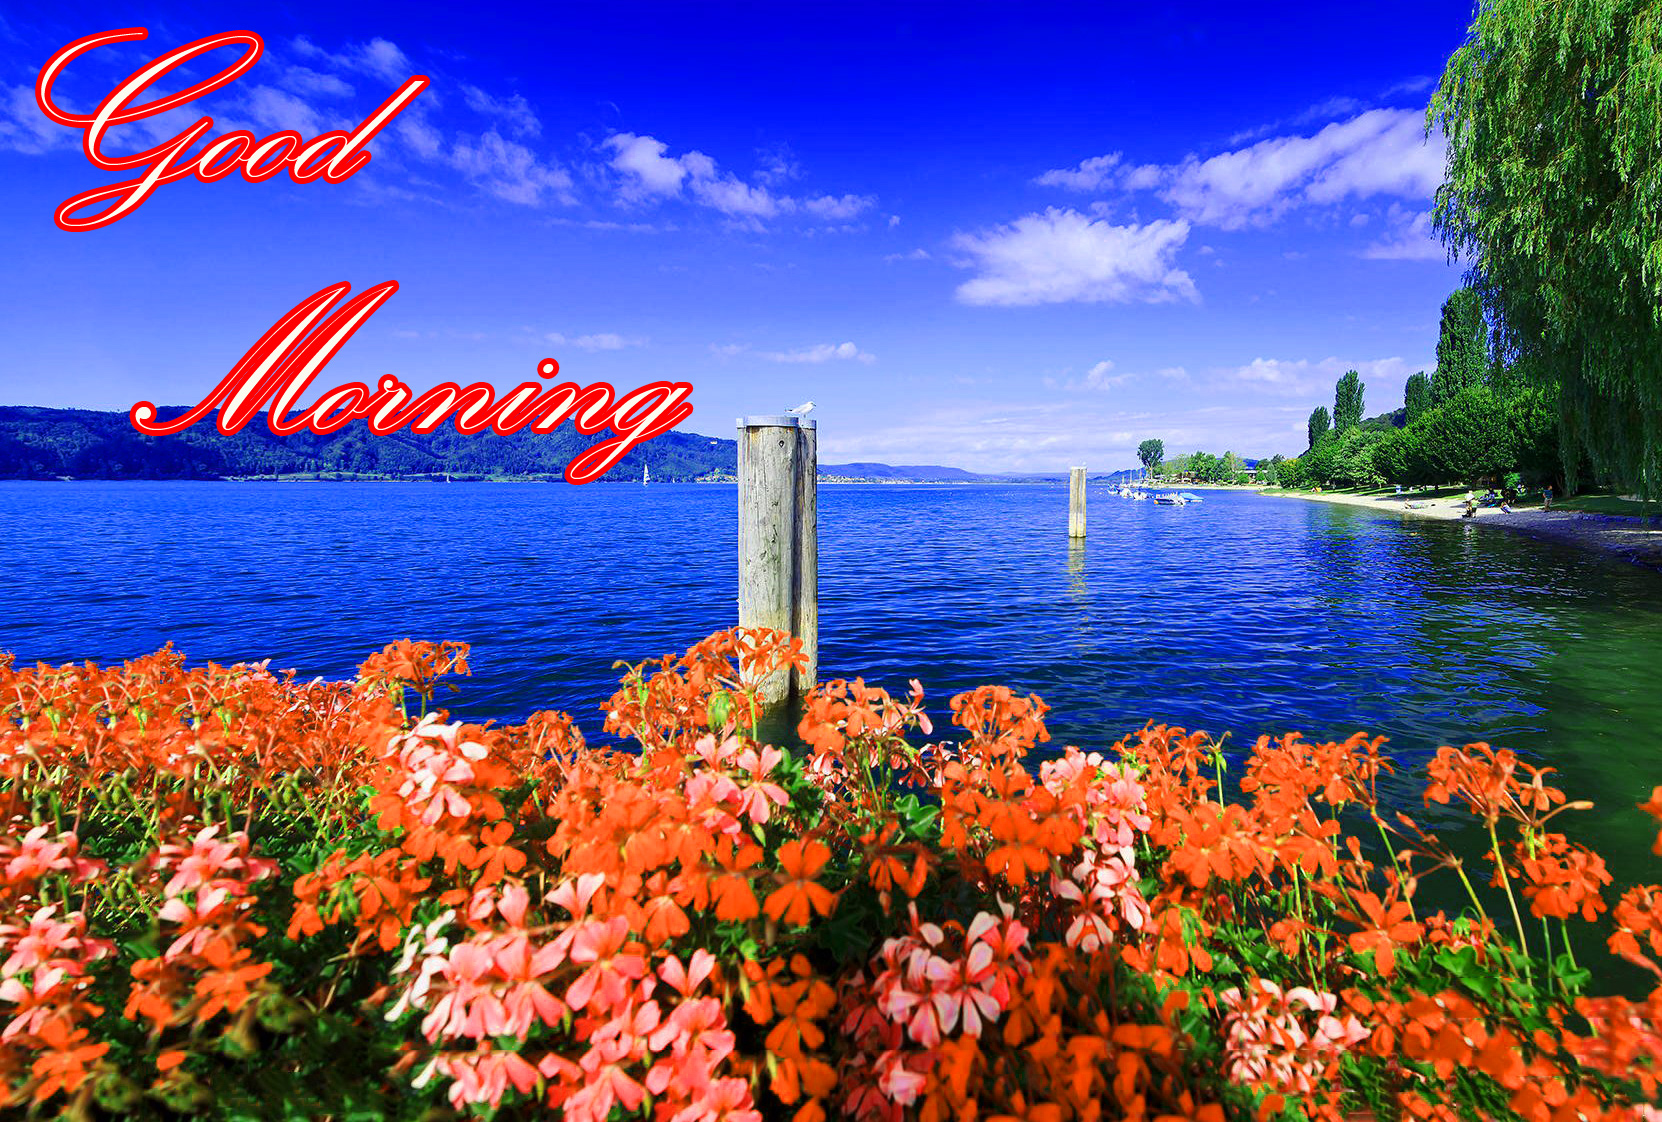 Good Morning Images Wallpaper photo Pictures Pics  HD For Facebook Download